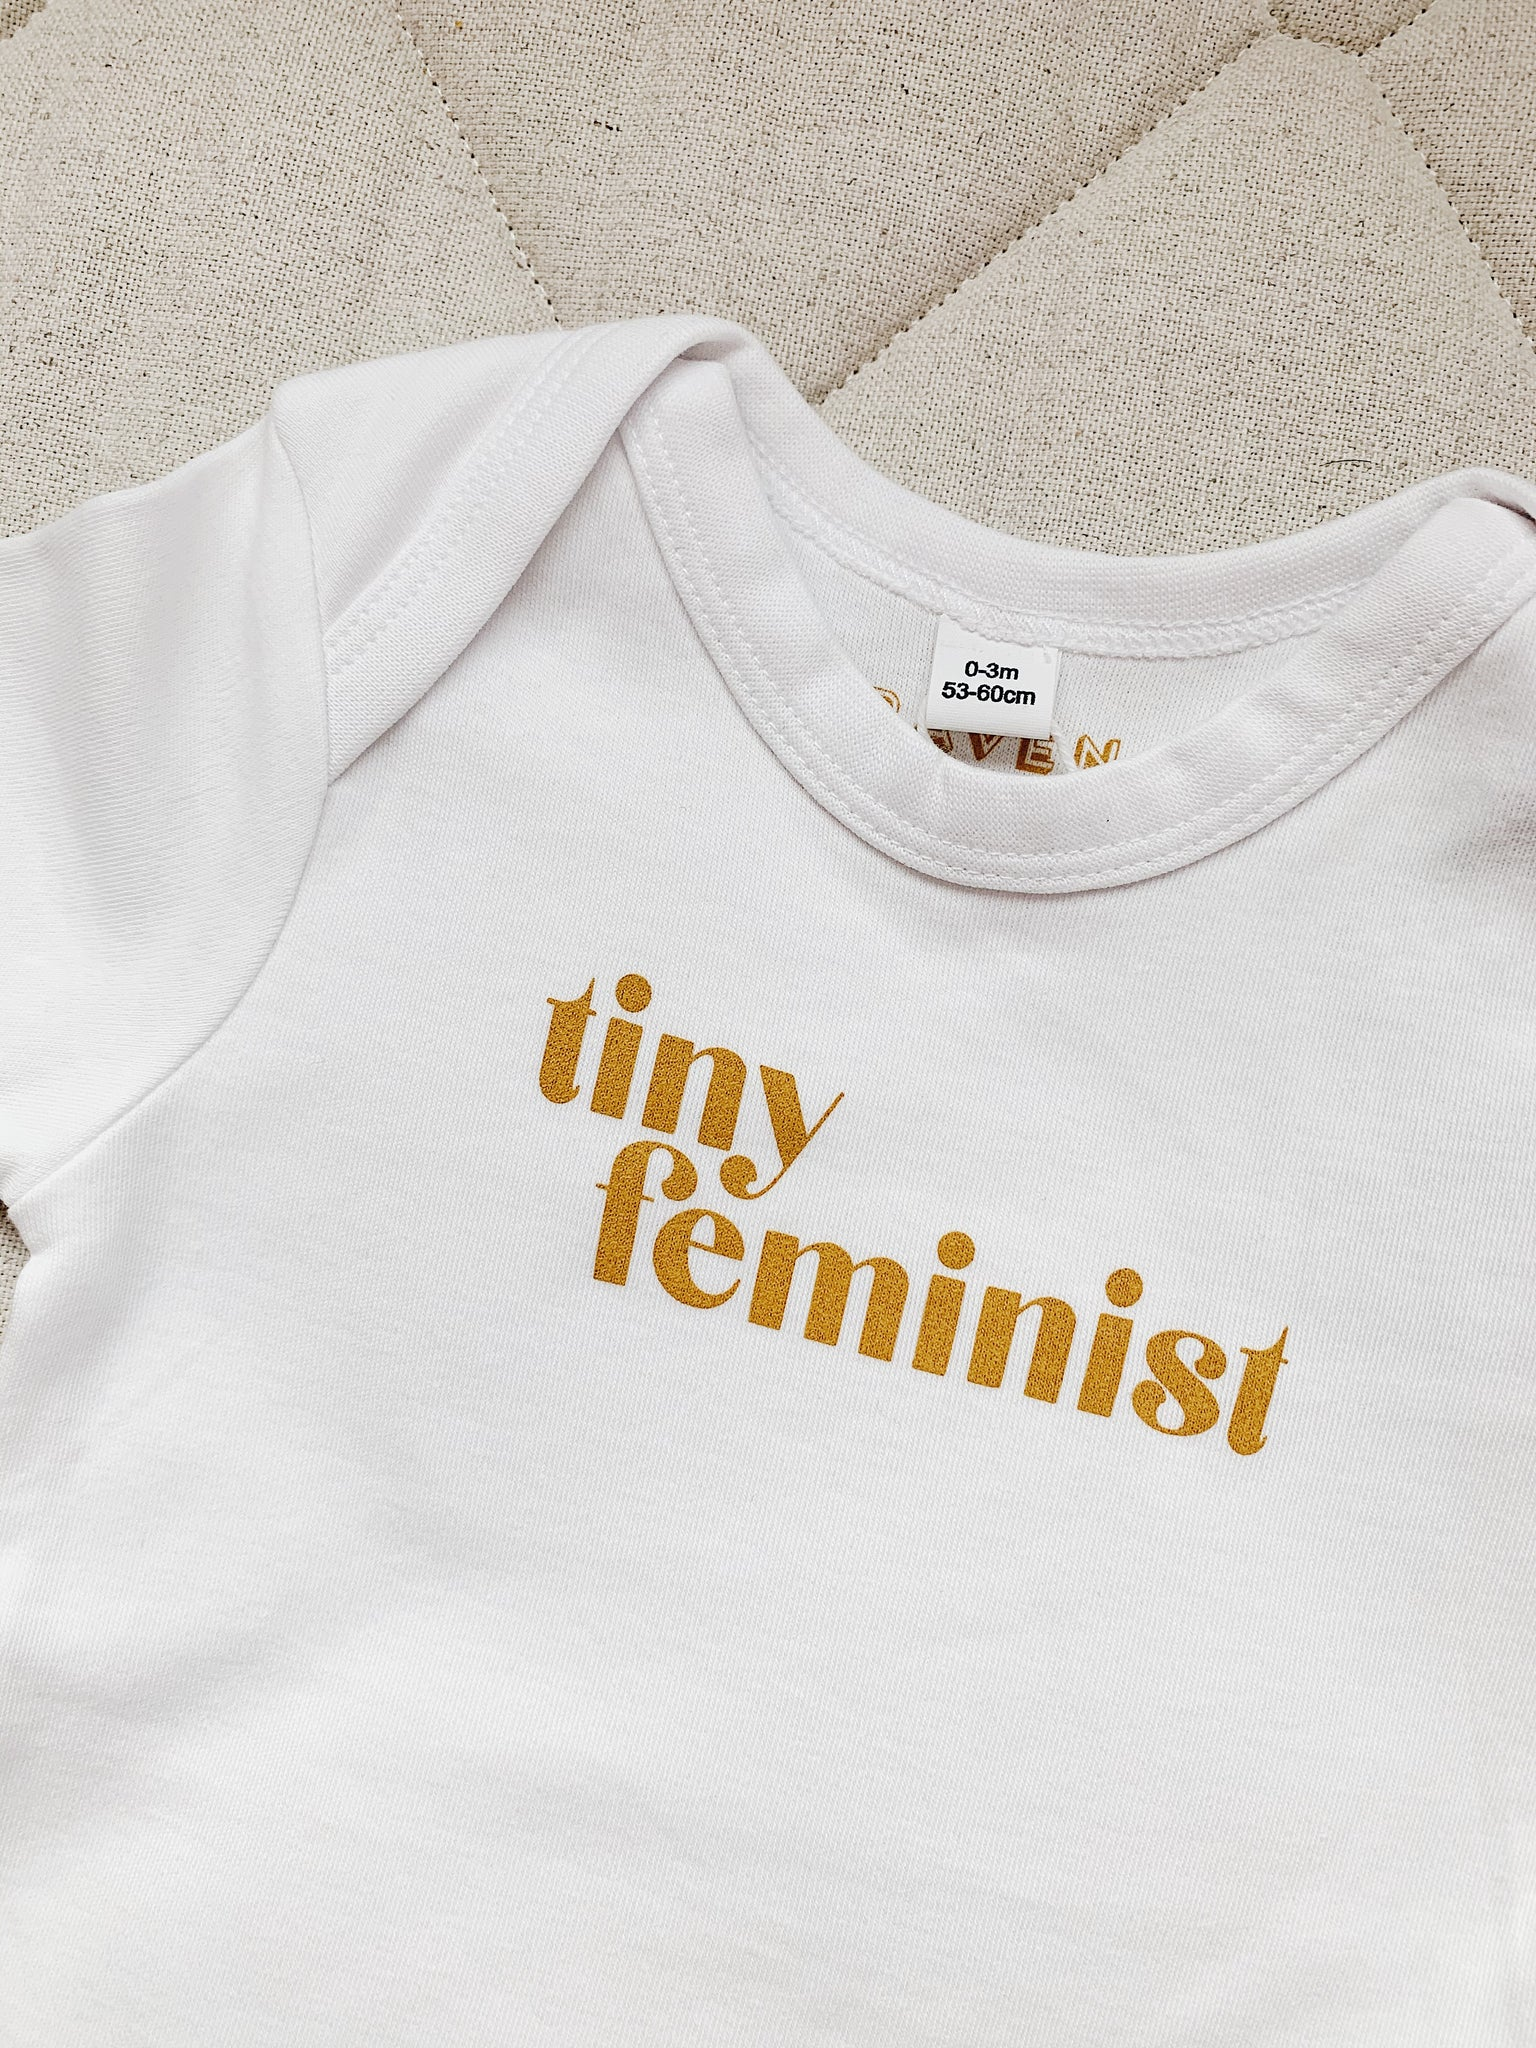 Retro Tiny Feminist Babybody